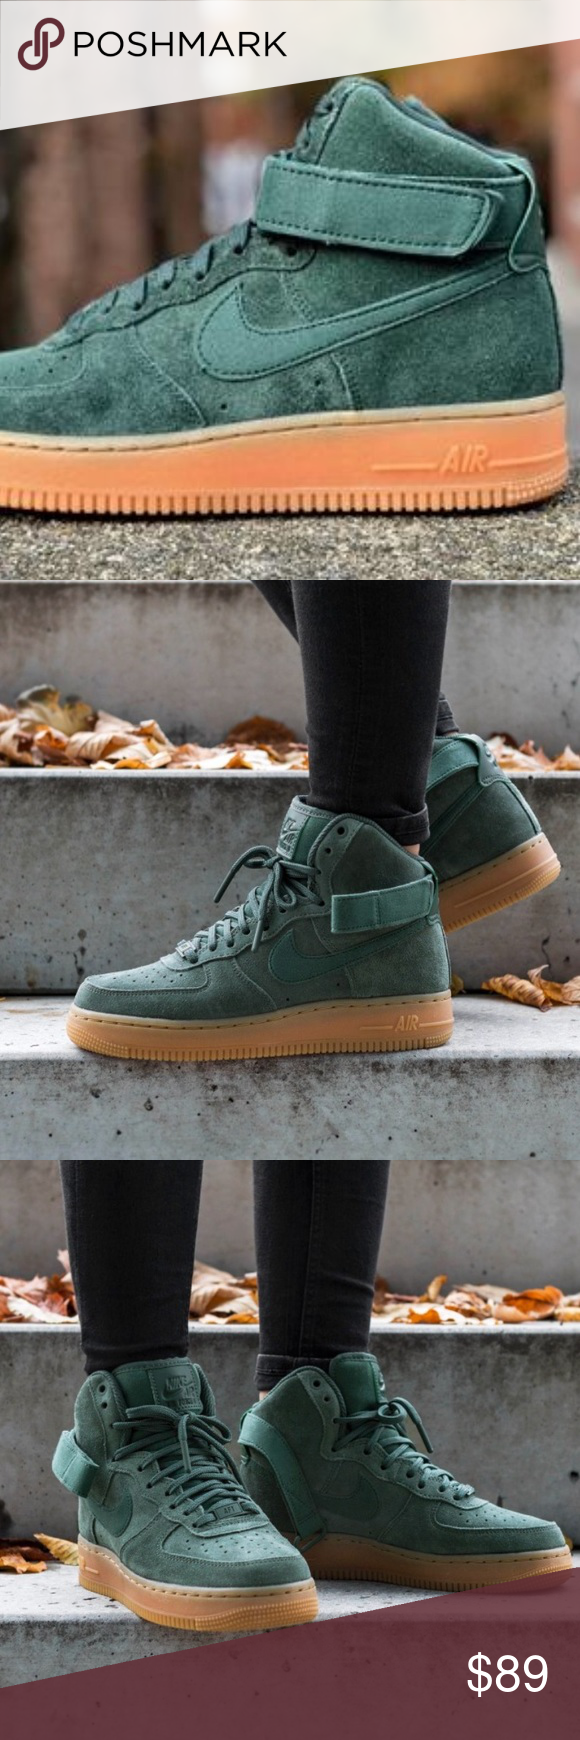 buy online 1ae90 6c4aa NWT Nike Air Force 1 HI SE Vintage Green WMNS Price is firm! Brand new with  no lid box. No trades. This special edition of the Nike Air Force 1 High  Women s ...